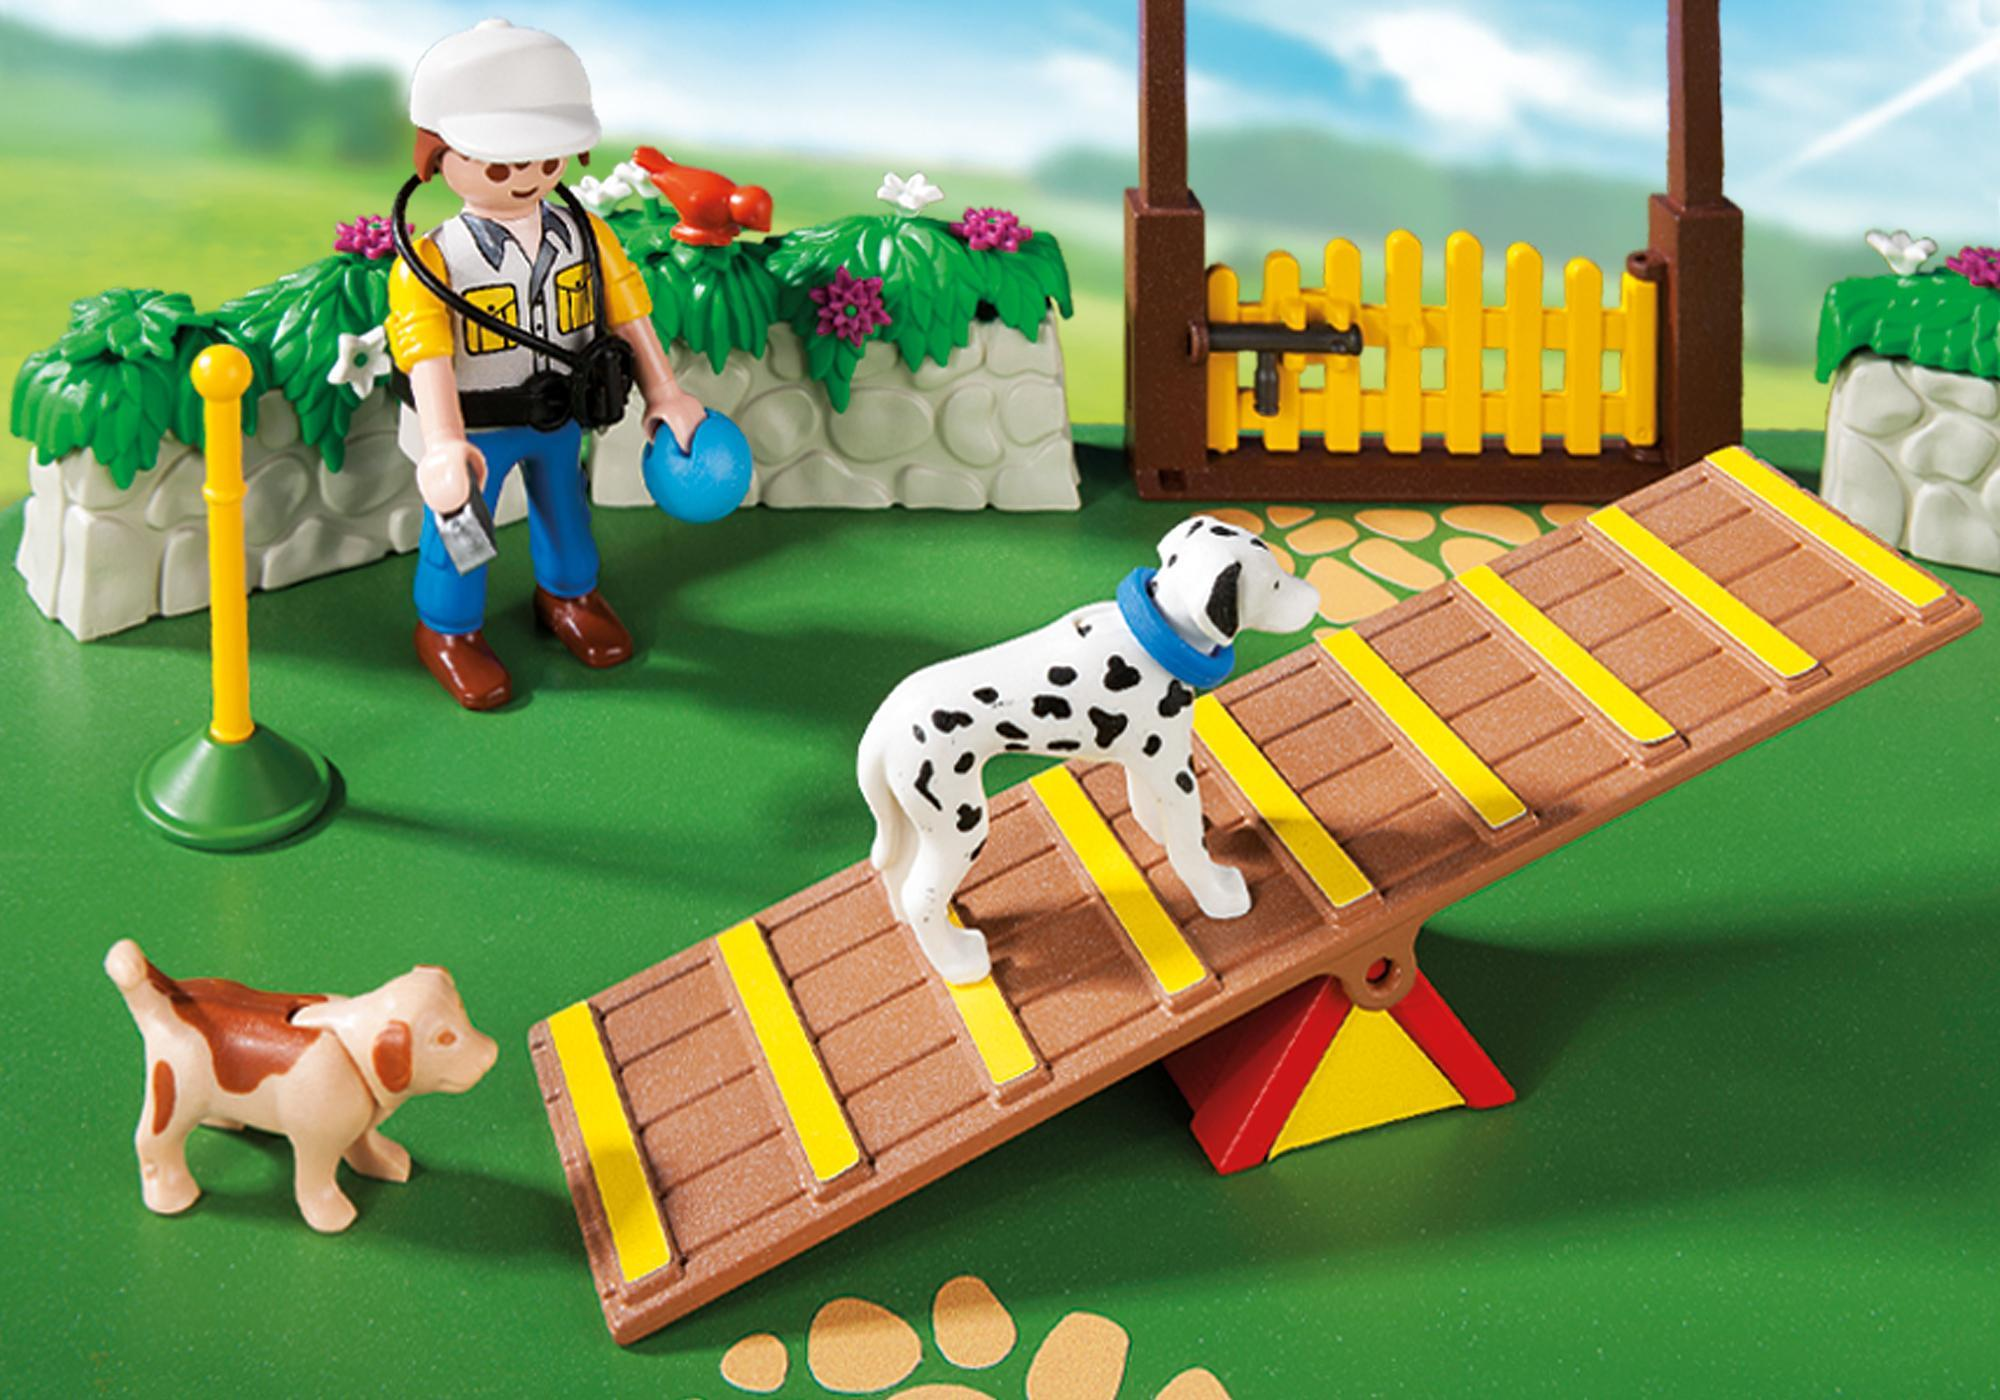 http://media.playmobil.com/i/playmobil/6145_product_extra2